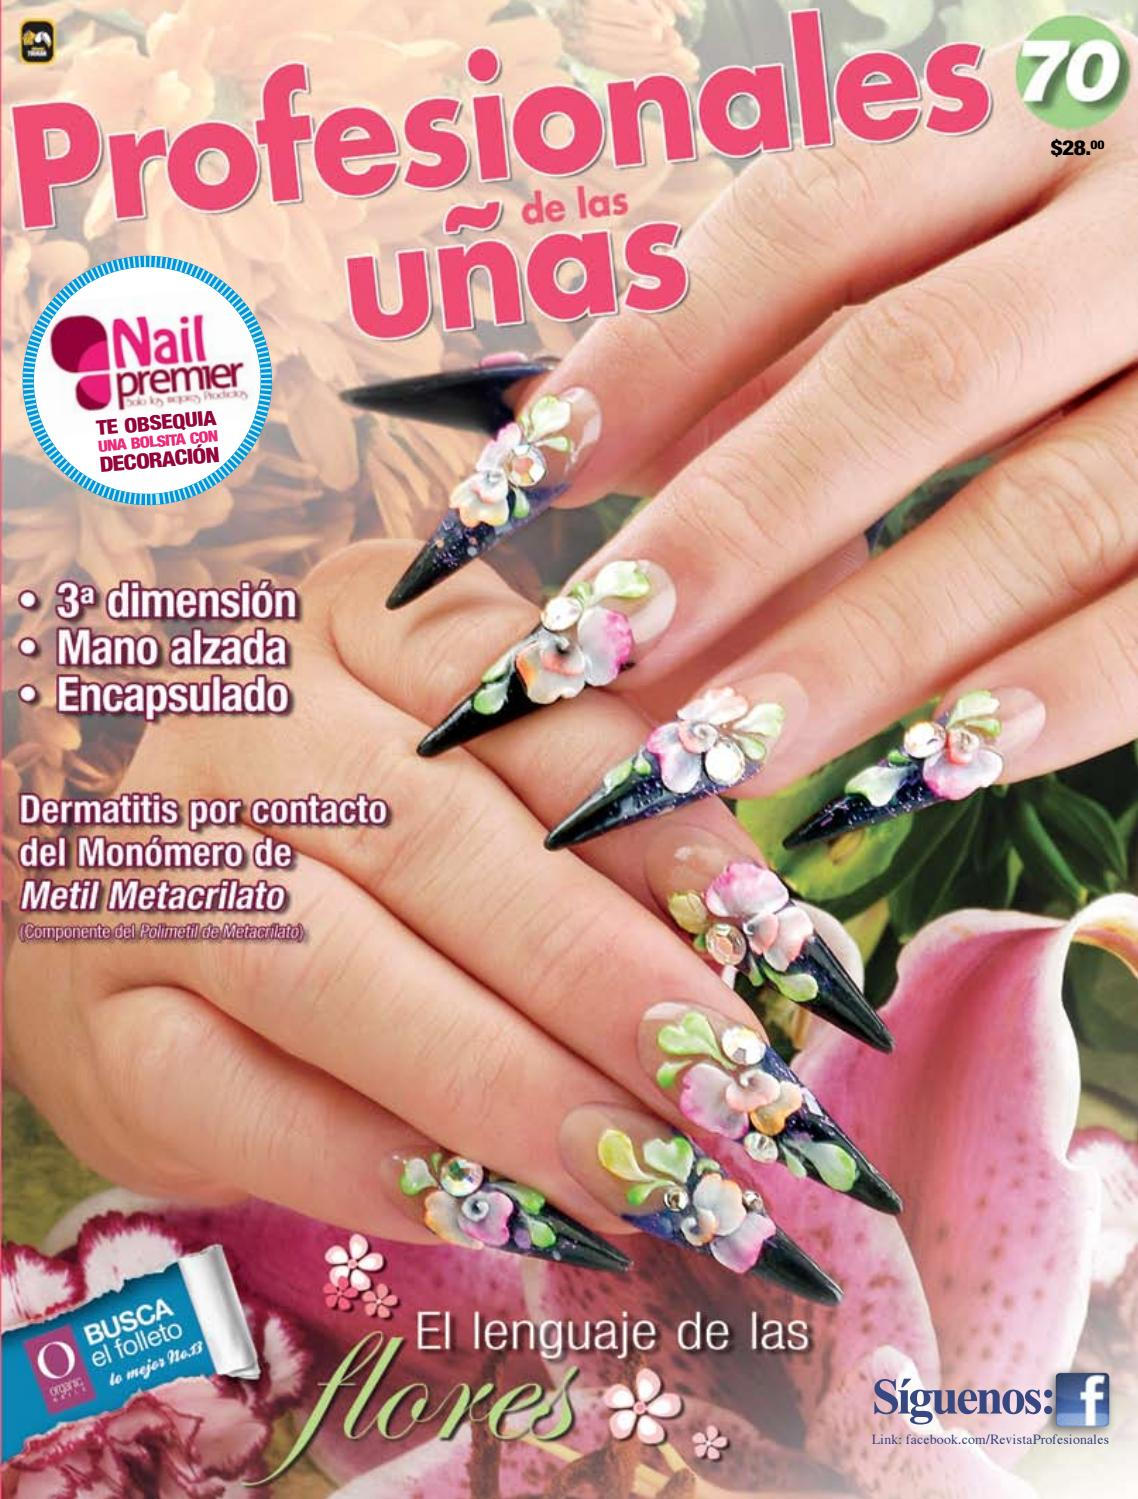 Profesionales de las uñas No. 70 by Editorial Toukan - issuu